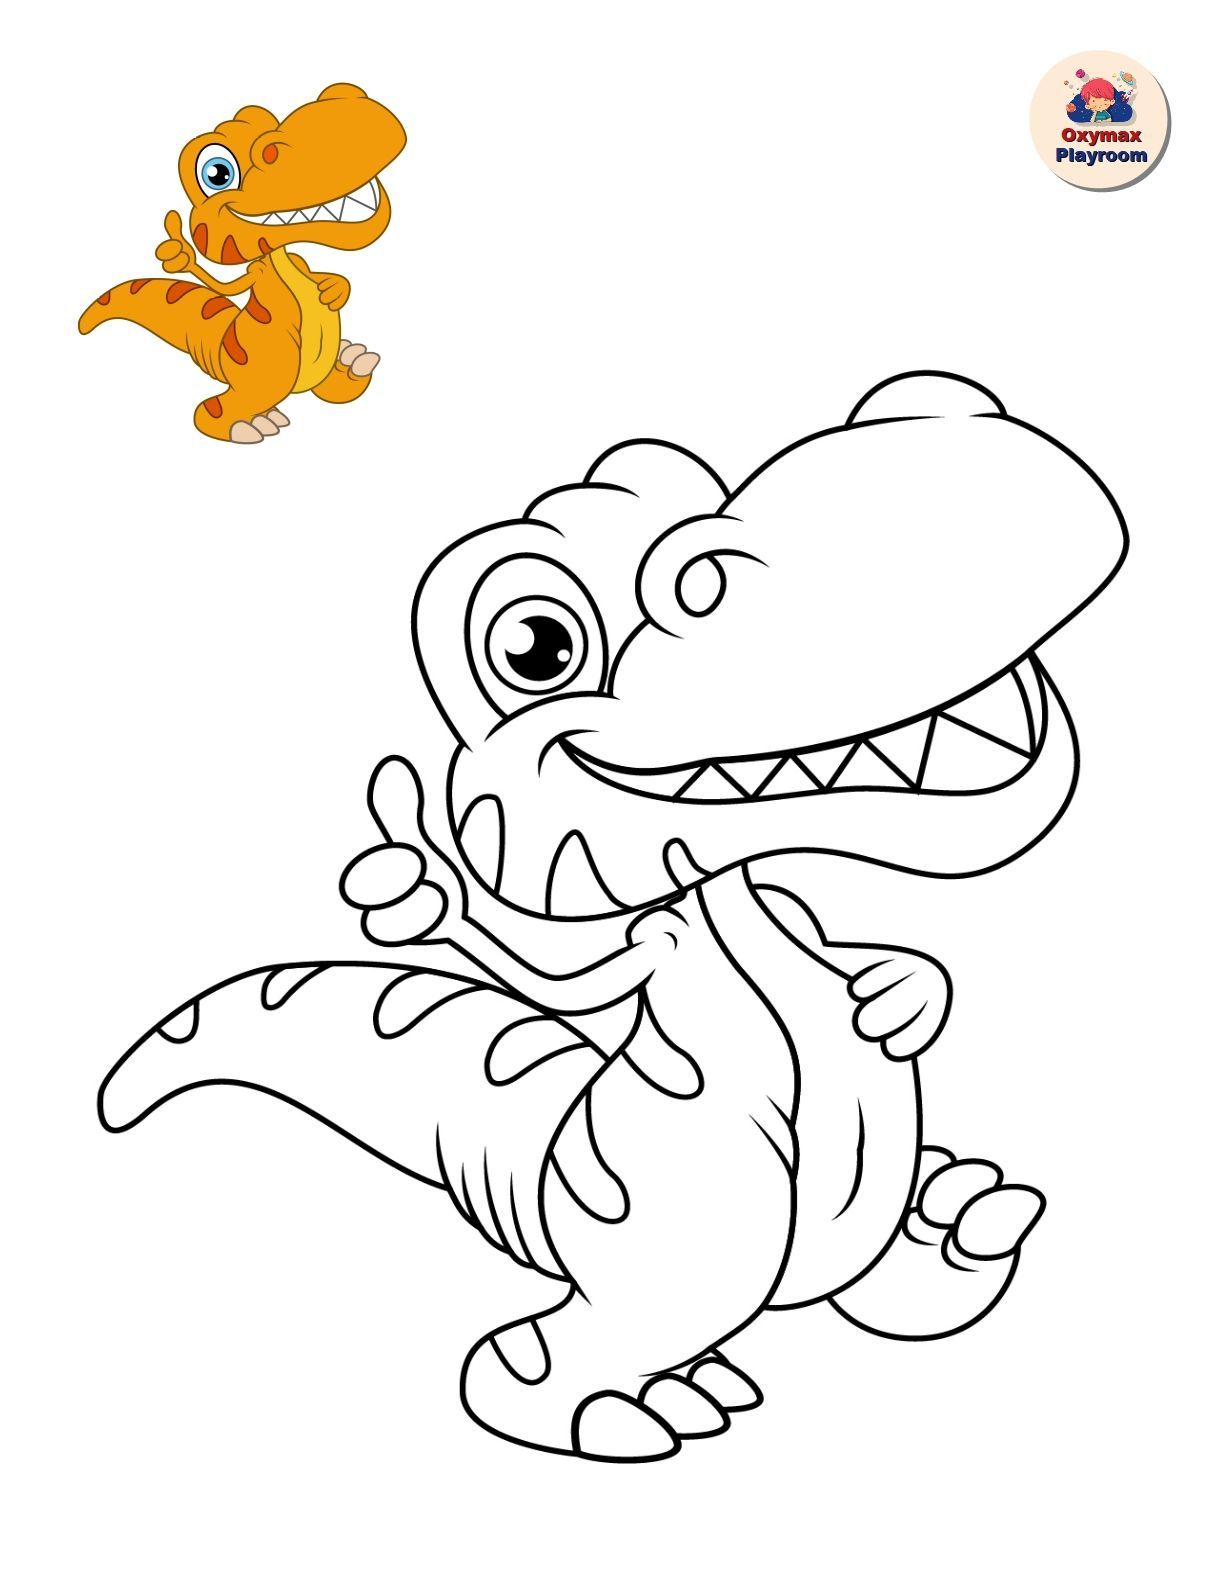 Coloring Pages For Children Dinosaurs Dinosaur Coloring Pages Dinosaur Coloring Sheets Coloring Pages